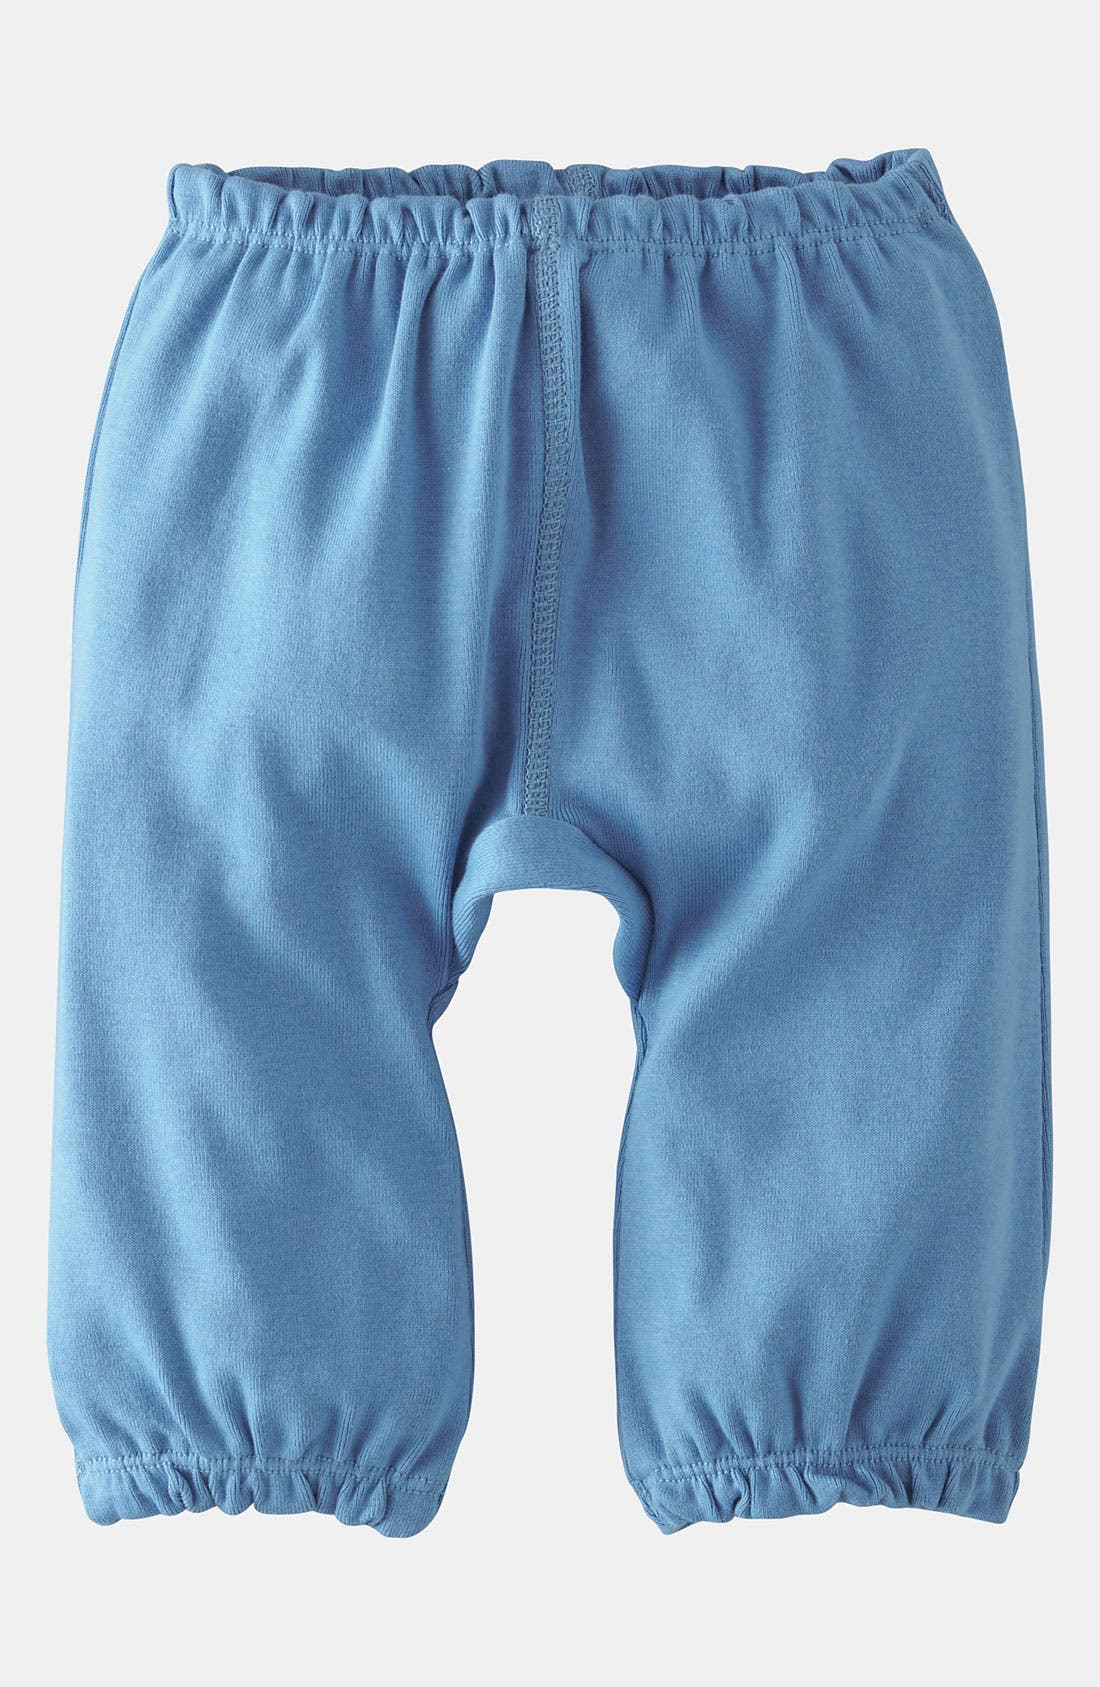 Alternate Image 1 Selected - Mini Boden Jersey Pants (Baby)